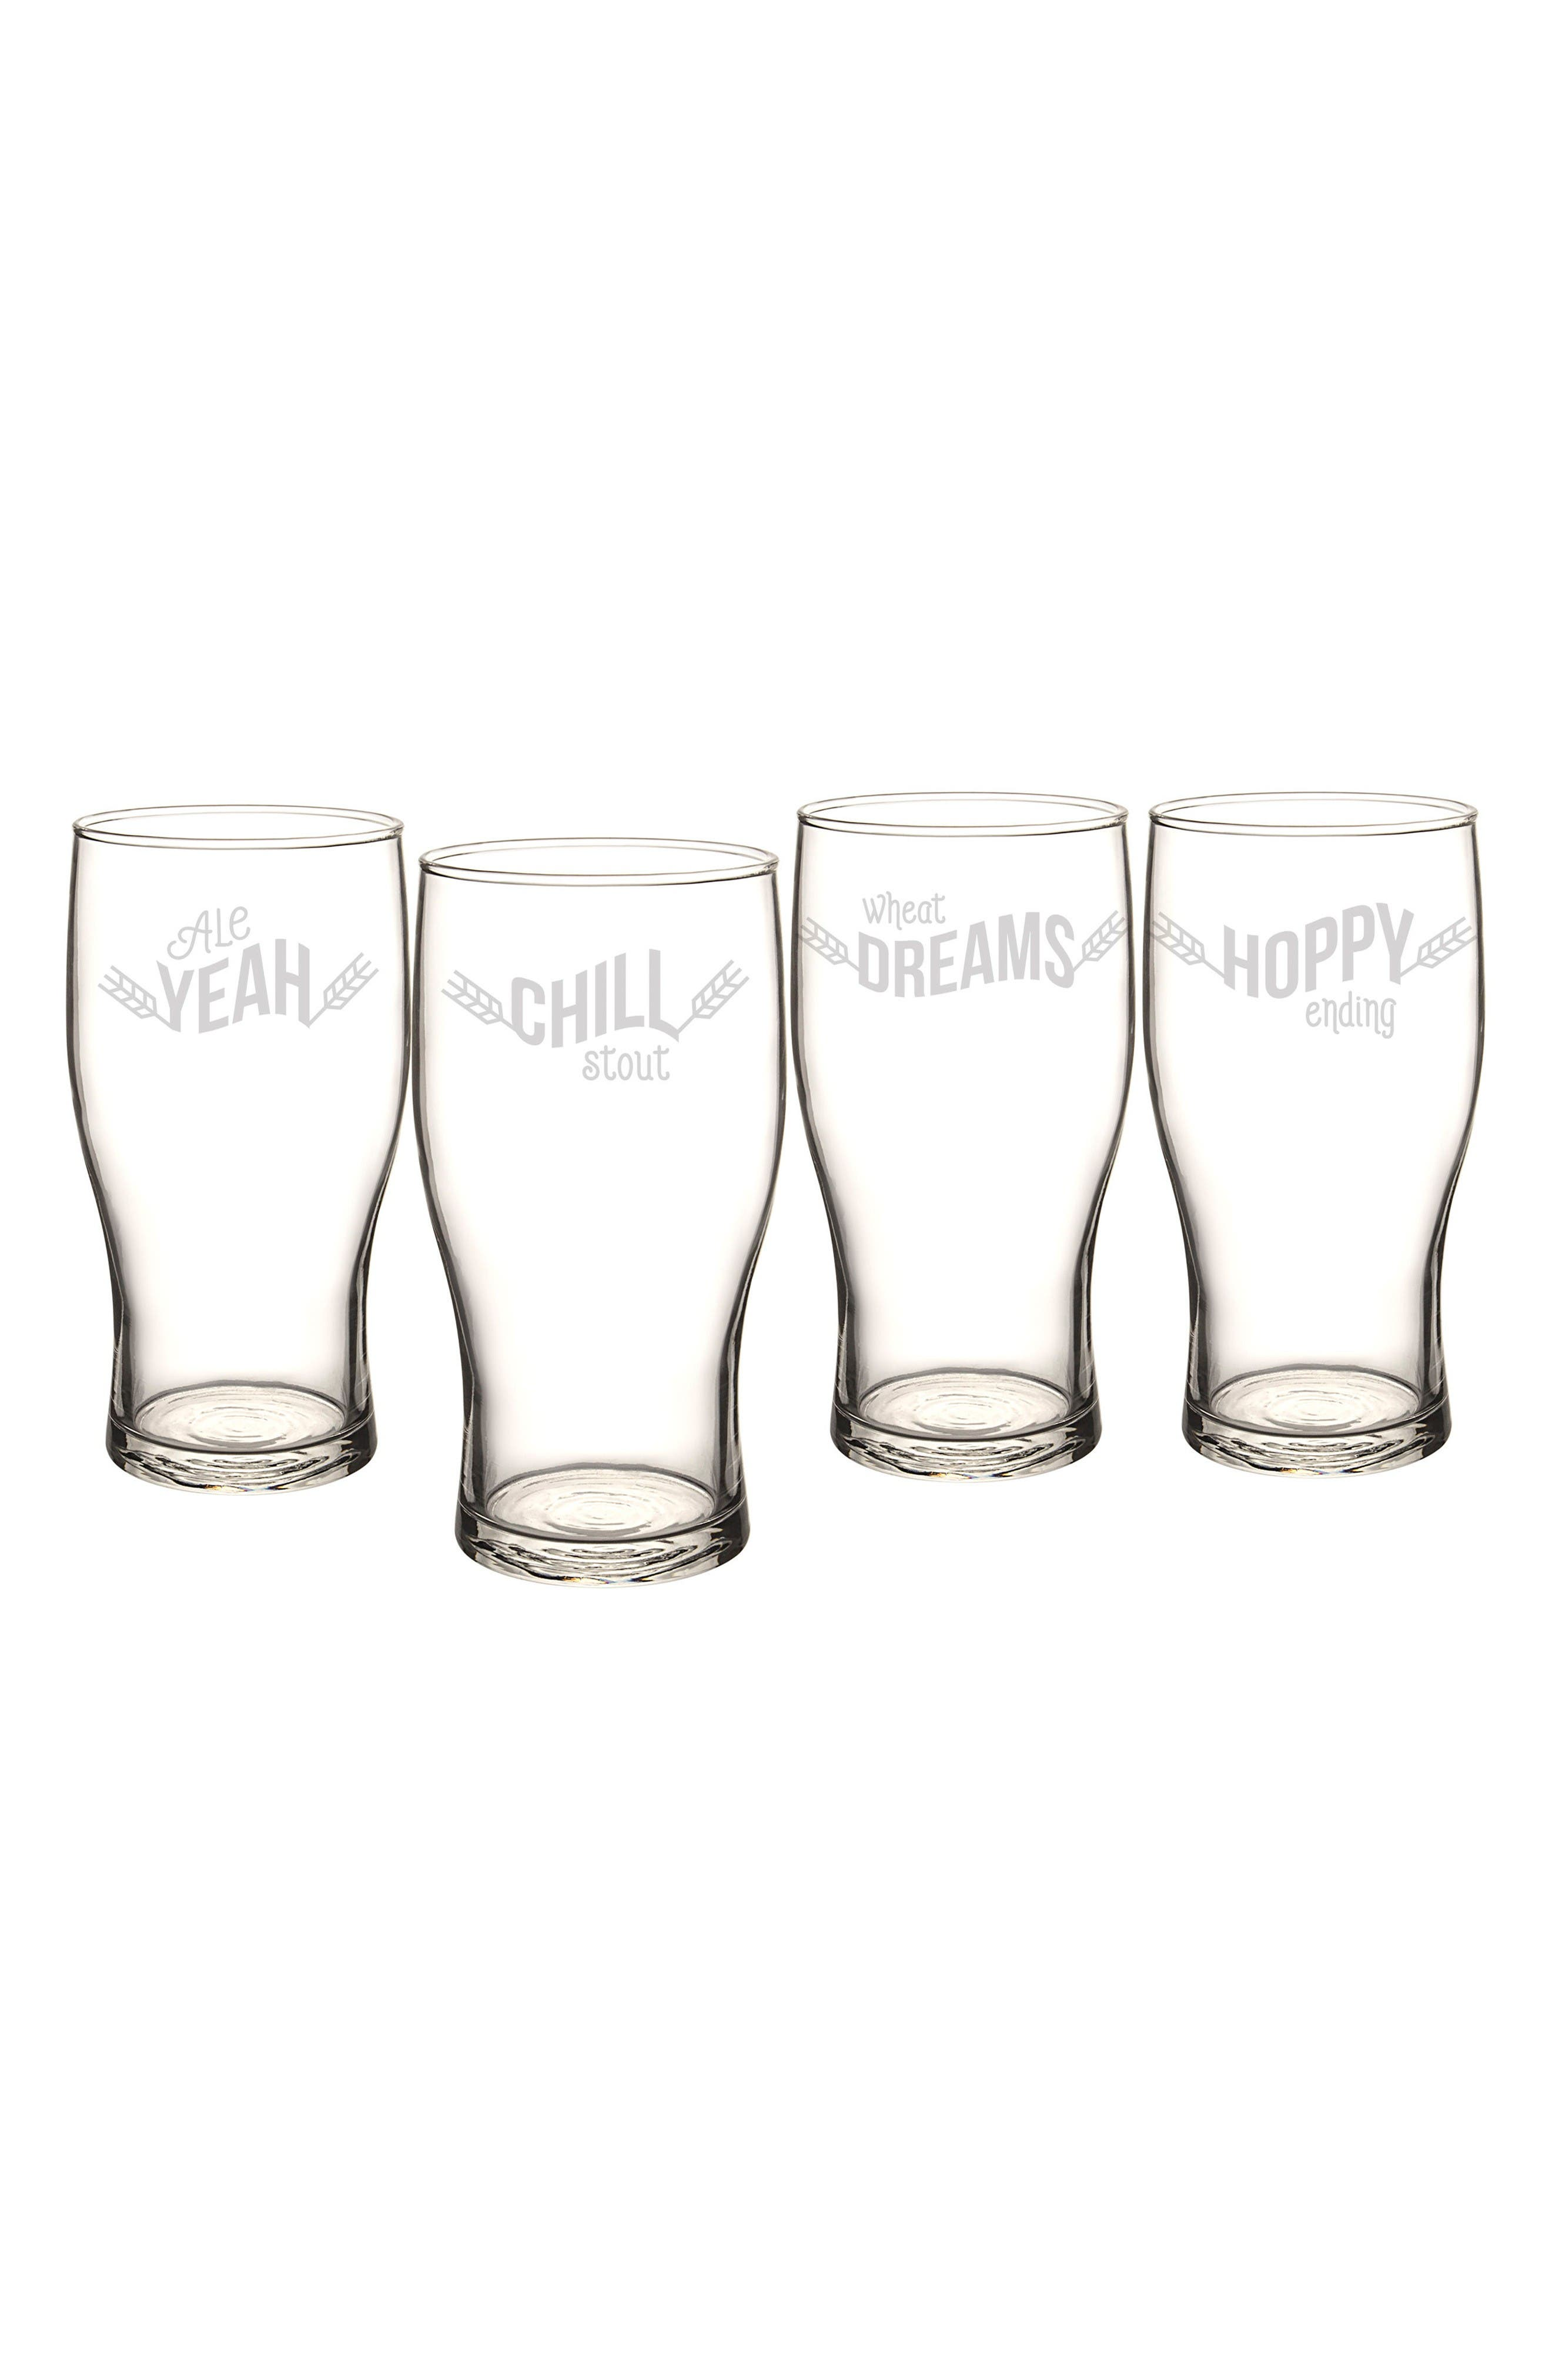 Cathy's Concepts Beer Pun Set of 4 Pilsner Glasses